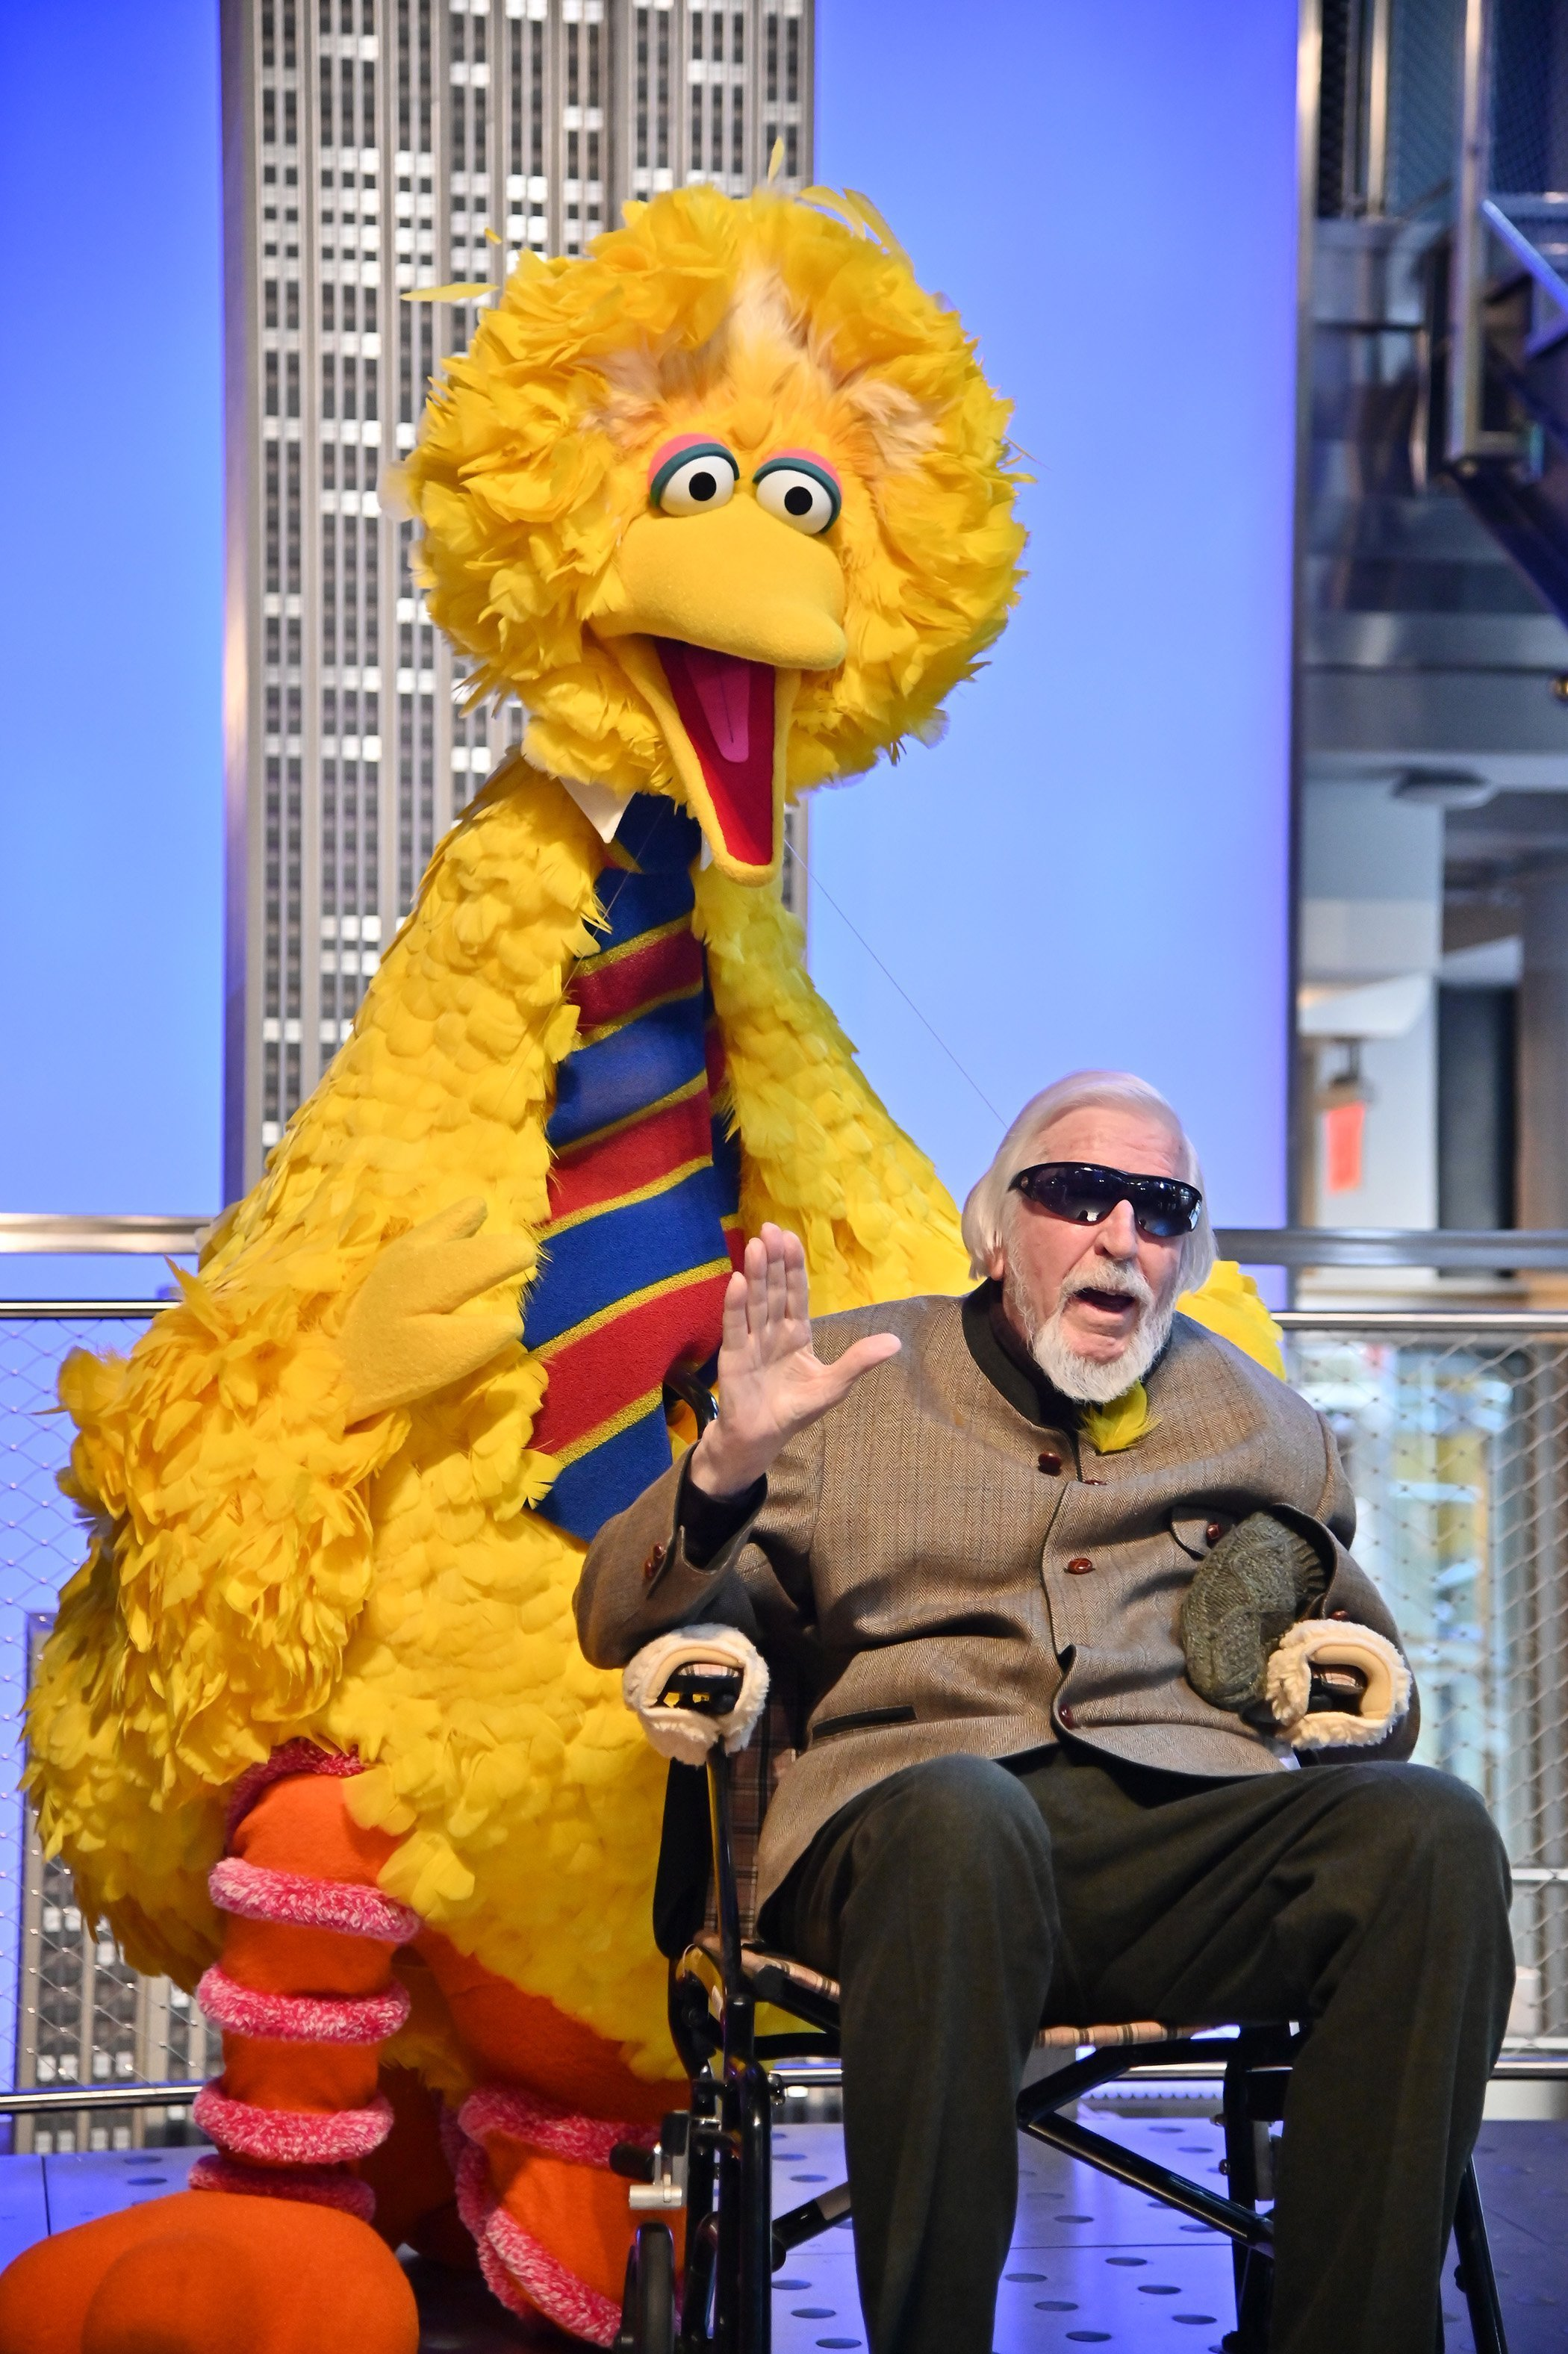 Caroll Spinney Light The Empire State Building at The Empire State Building on November 08, 2019, in New York City. | Source: Getty Images.